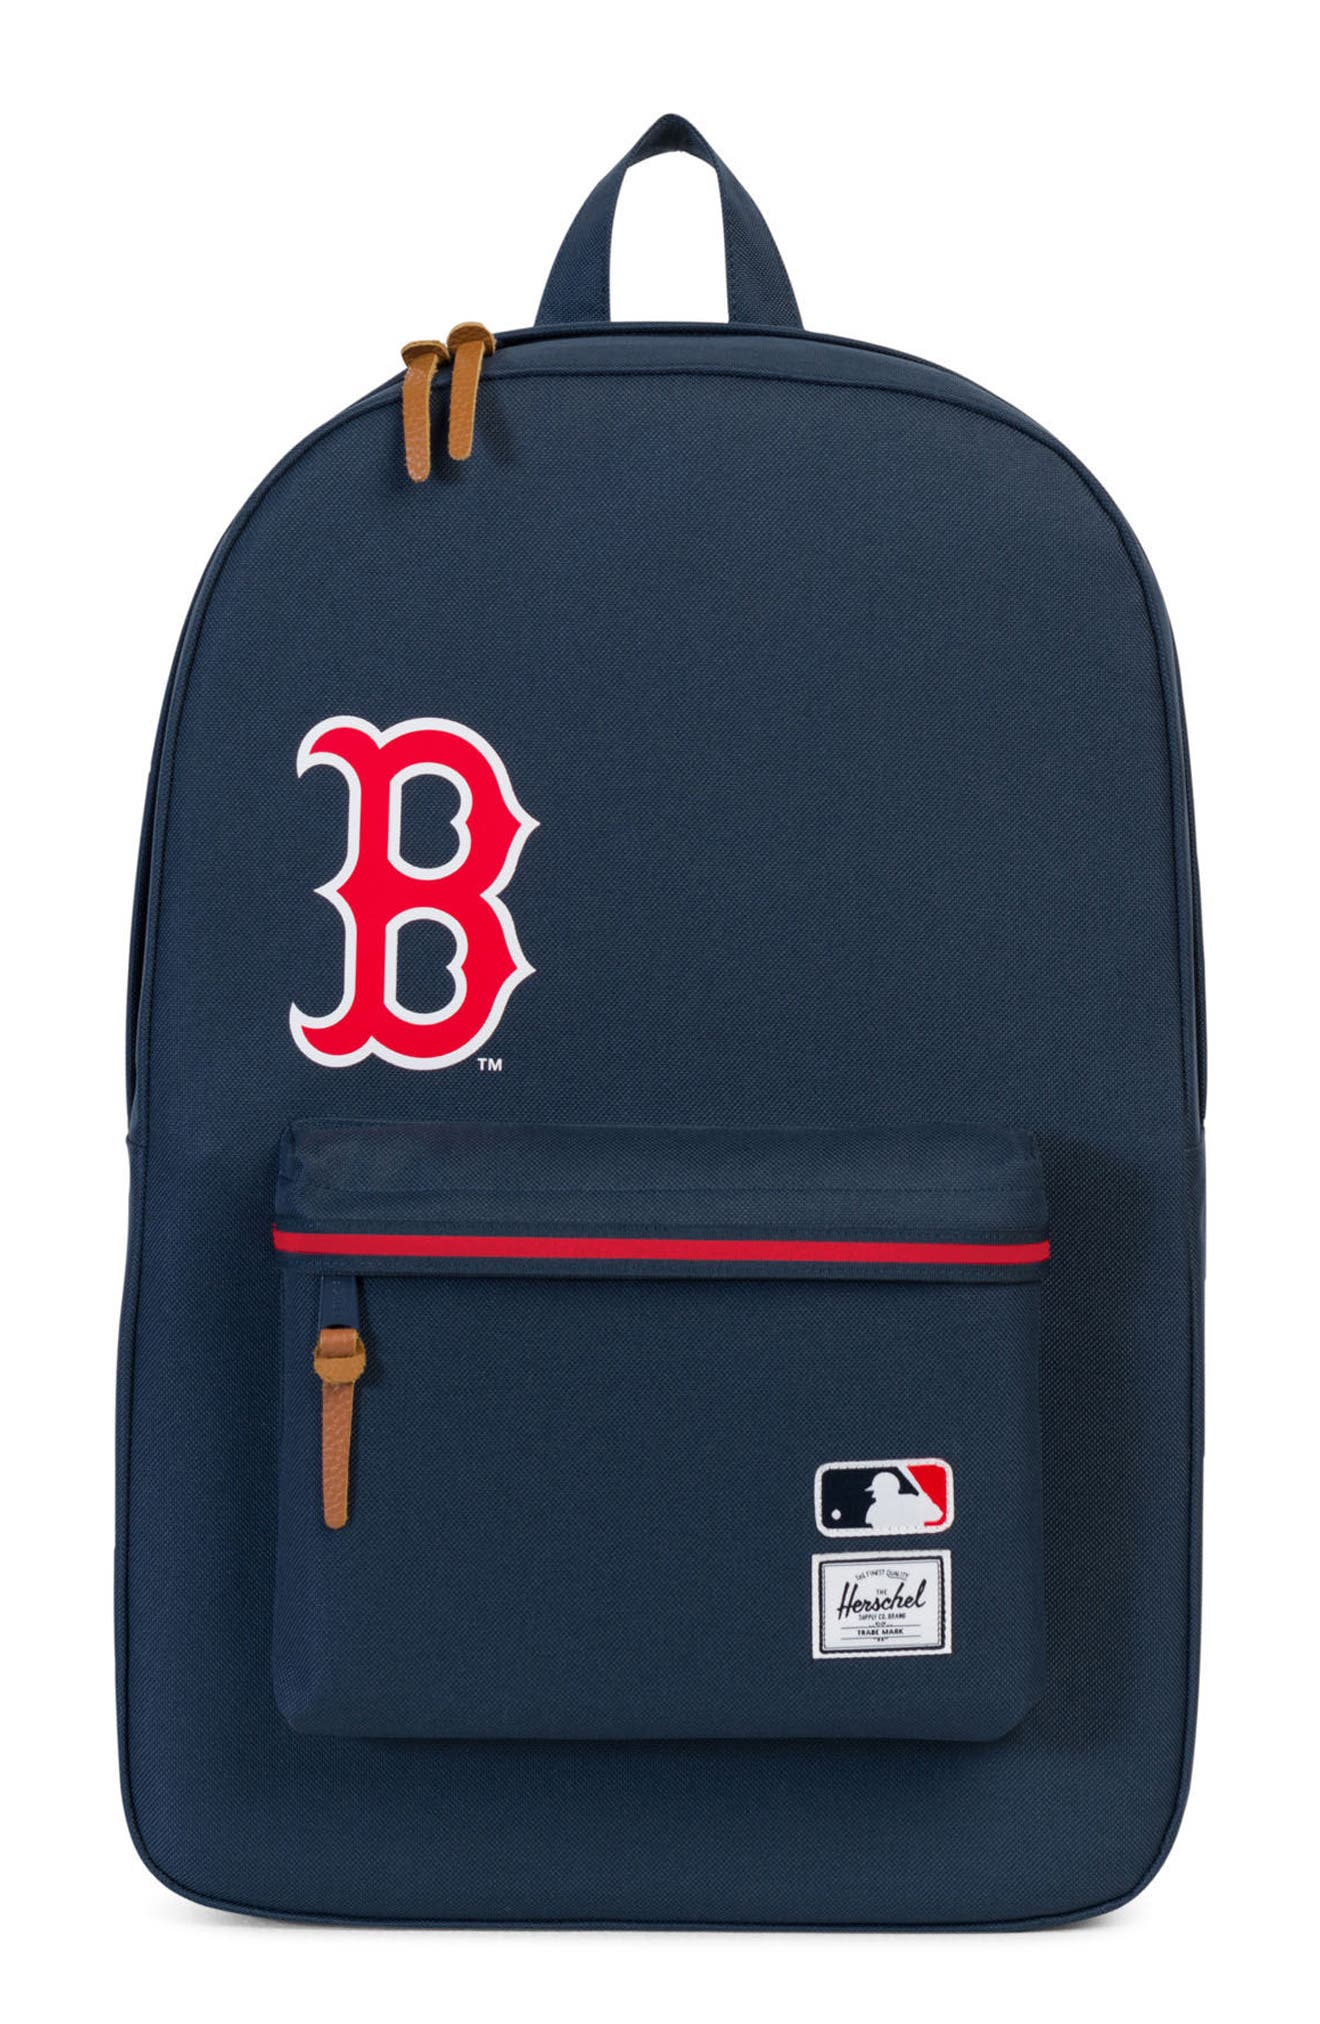 Main Image - Herschel Supply Co. Heritage Boston Red Sox Backpack